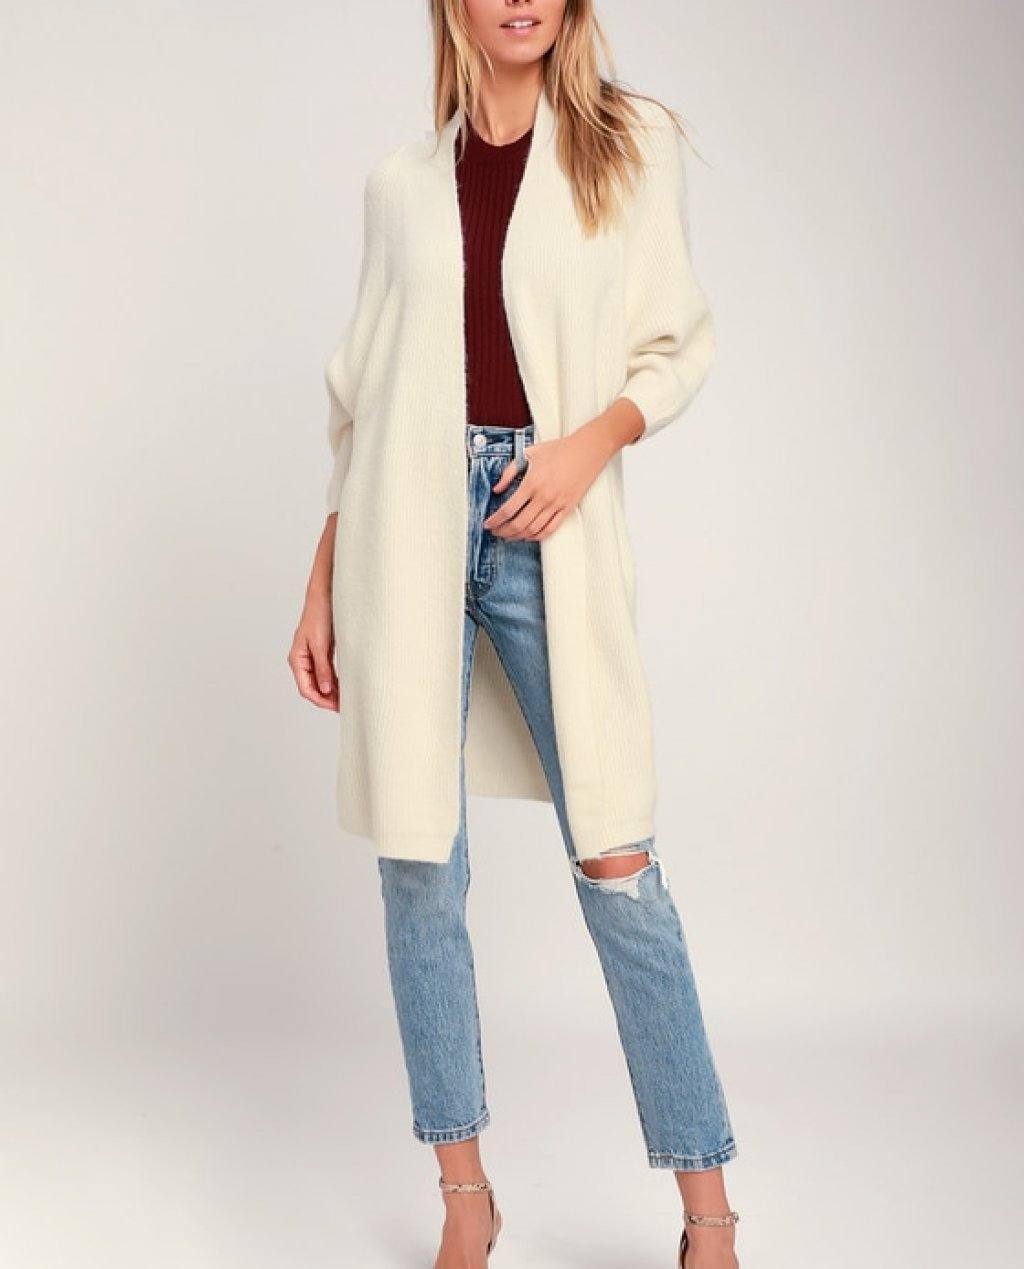 Deangelo Cream Oversized Cardigan Sweater